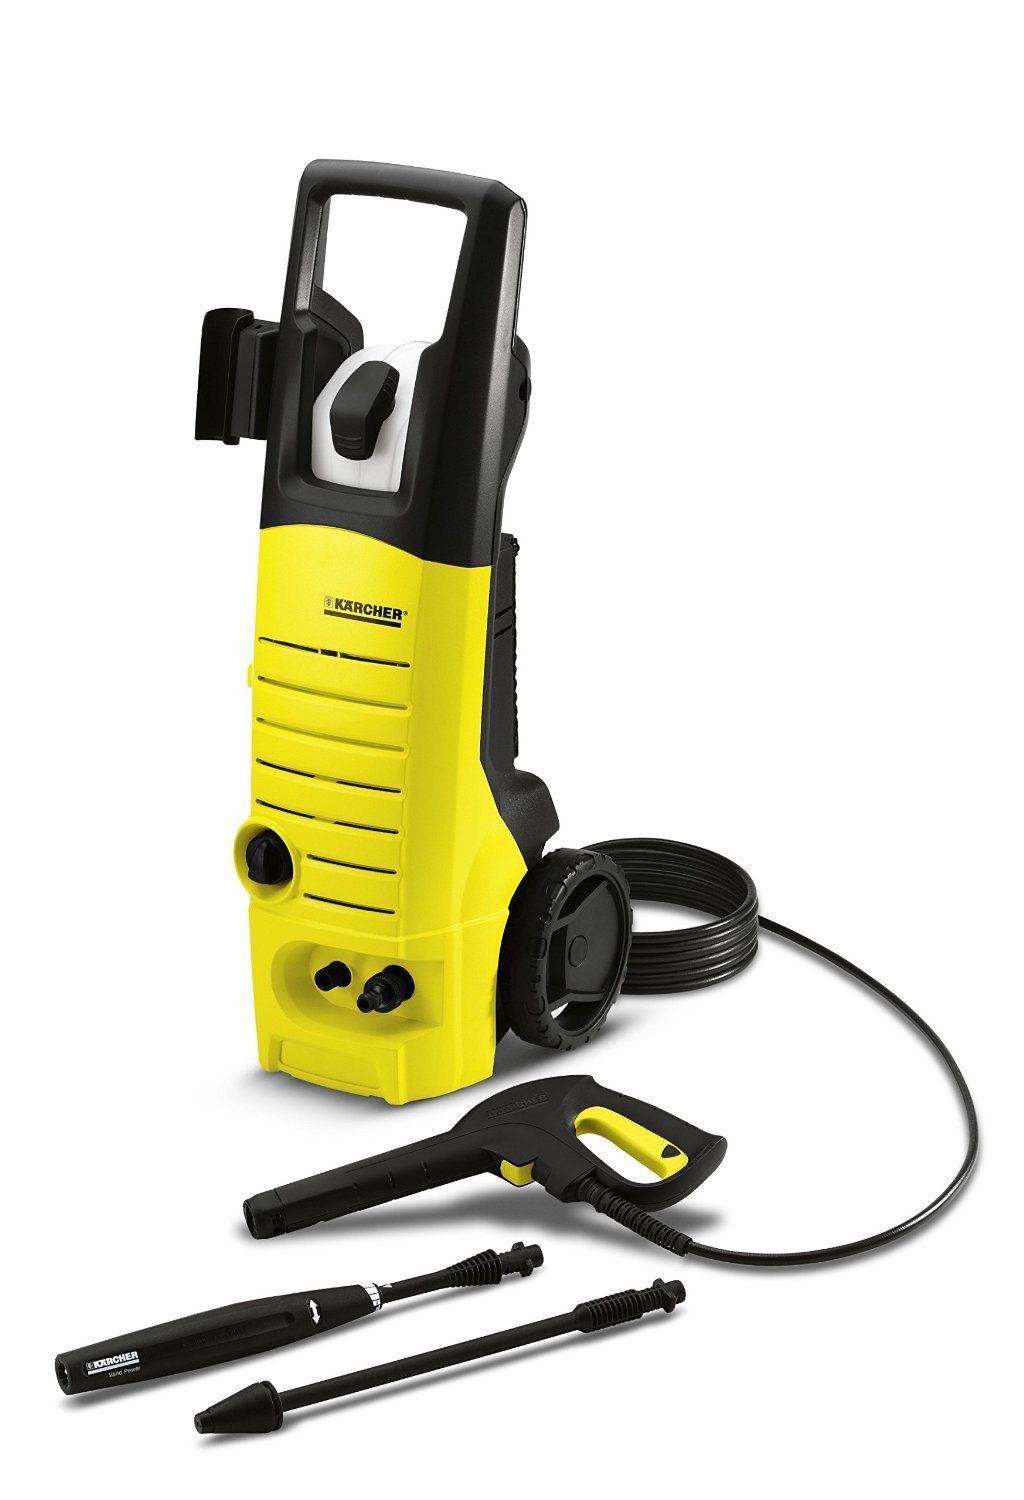 amazon com karcher k3 electric power pressure washer 1800 psi rh amazon com Clip Art User Guide Kindle Fire User Guide